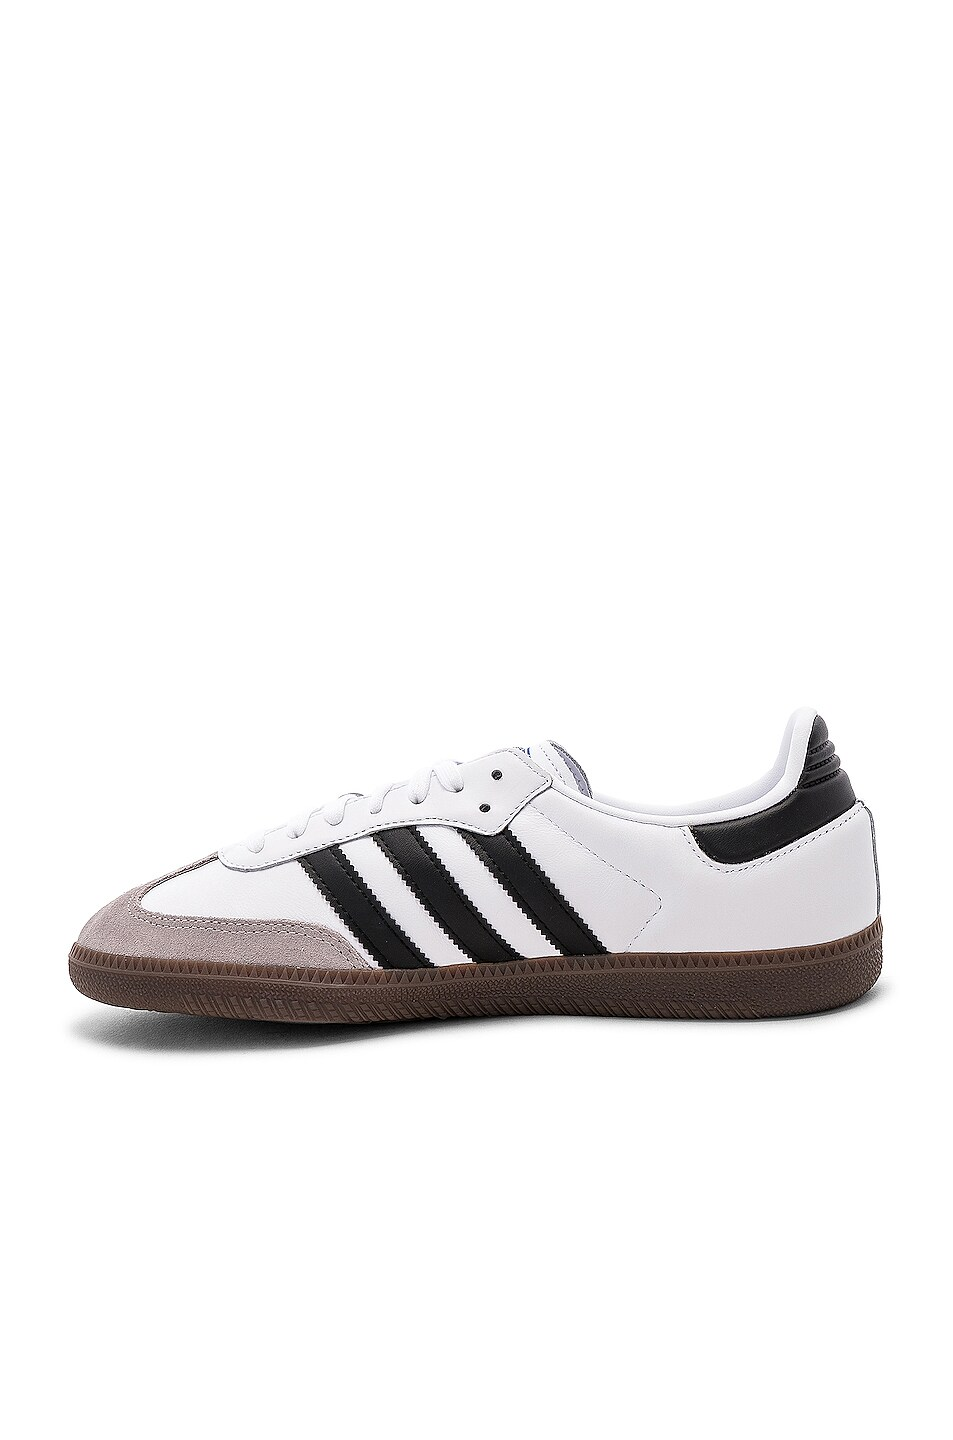 Image 5 of adidas Originals Samba in White & Black & Clear Granite